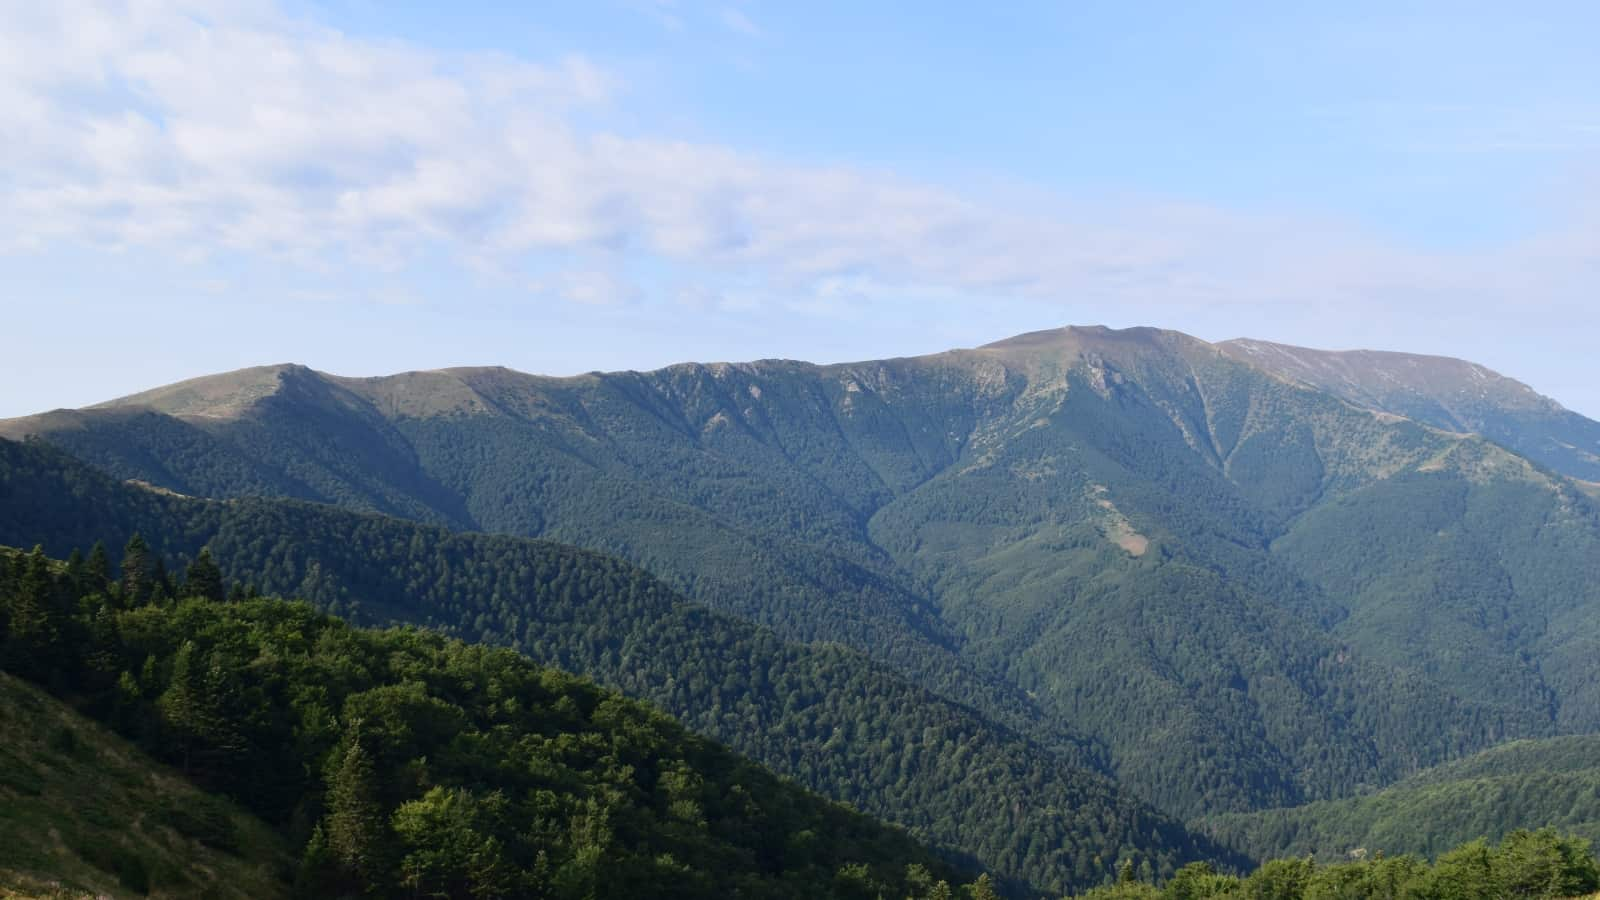 Scenic view from the path - Photo: Central Balkan National Park/Stoyan Hristov